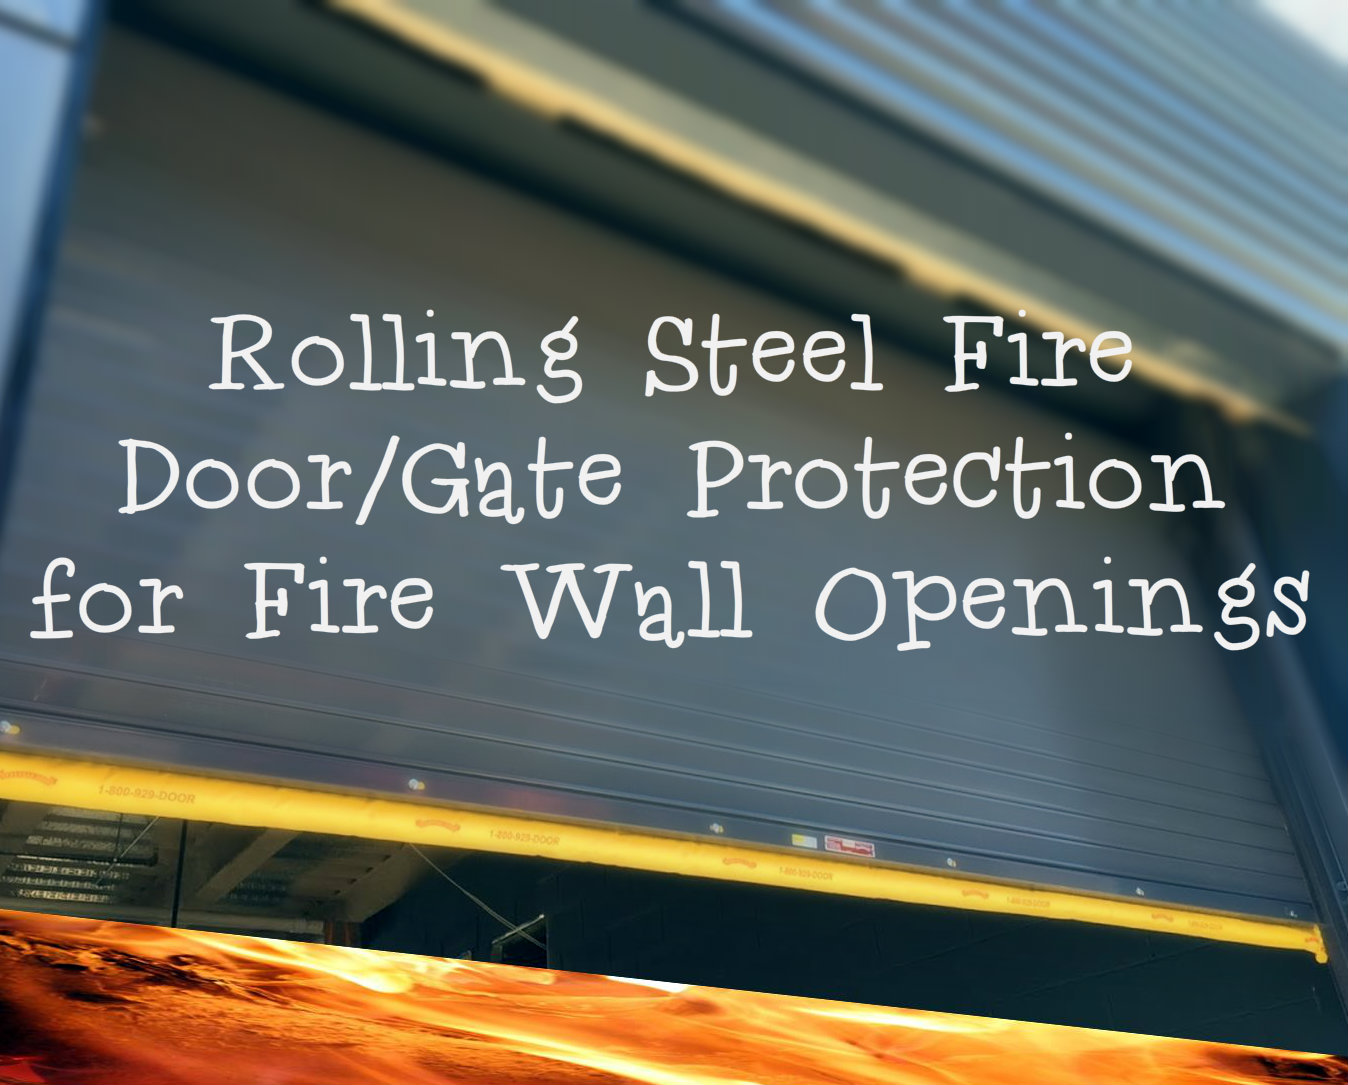 Rolling Steel Fire Door Gate Protection for Fire Wall Openings fire.